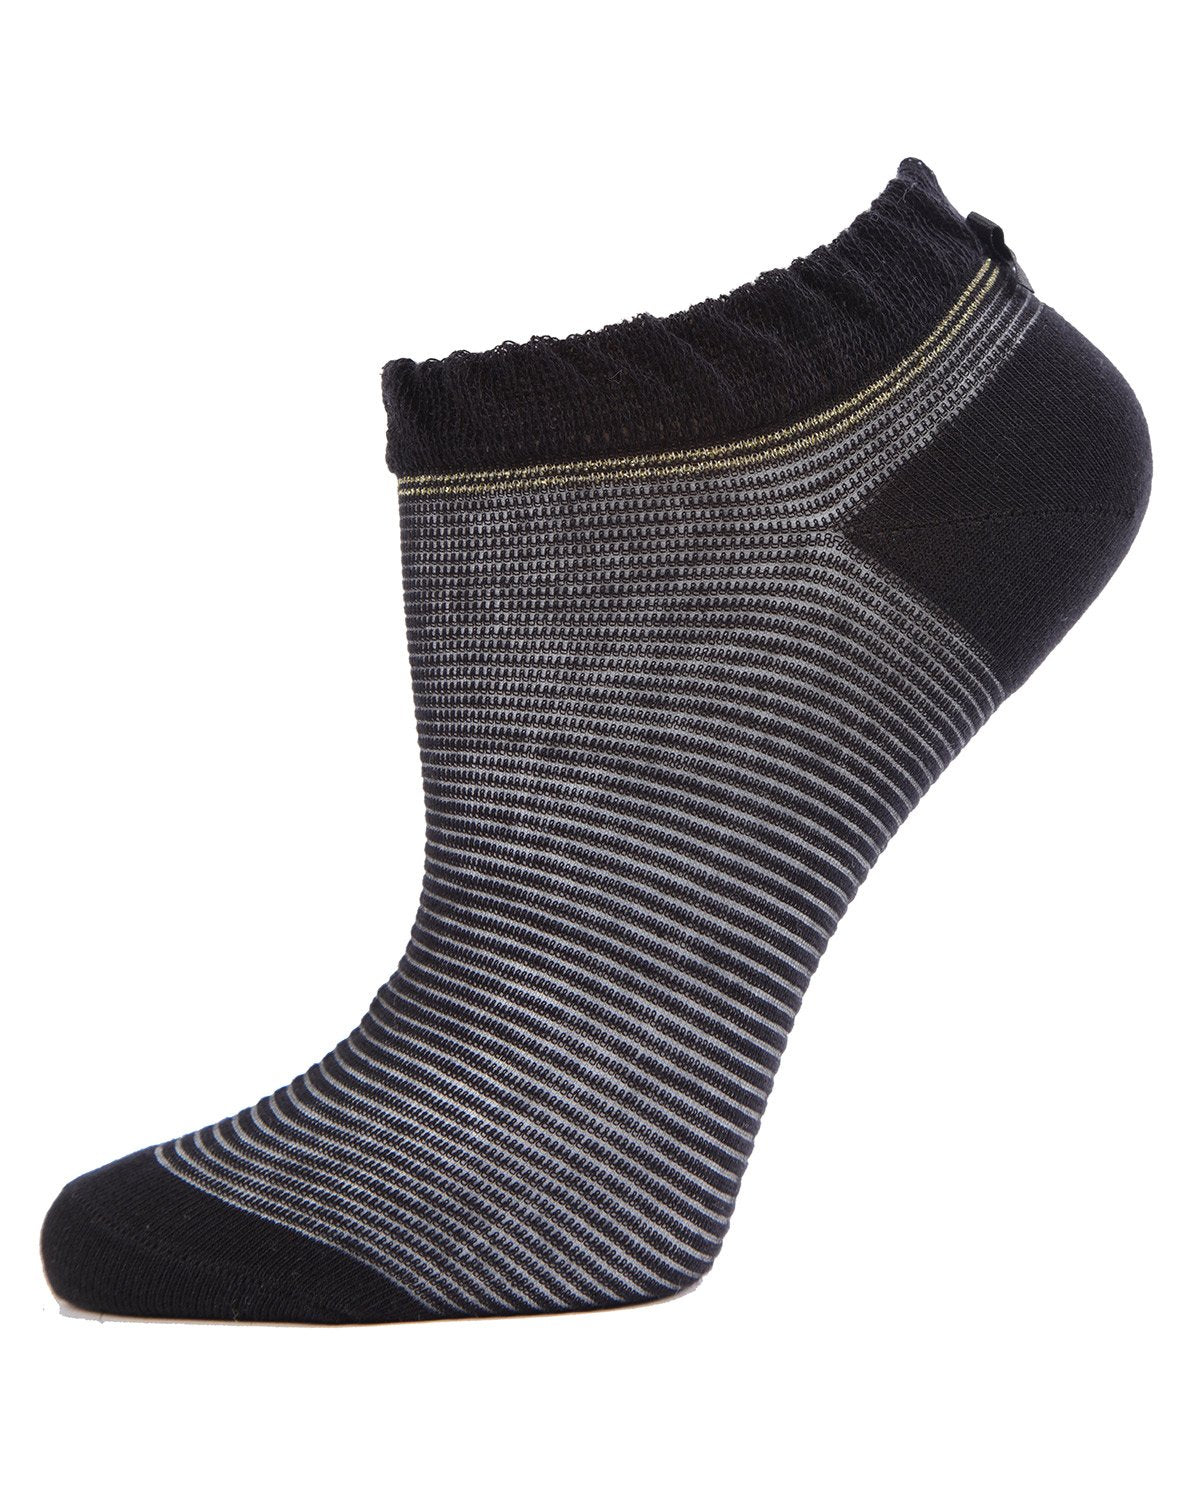 Stripes on Stripes Semi-sheer No Show Socks